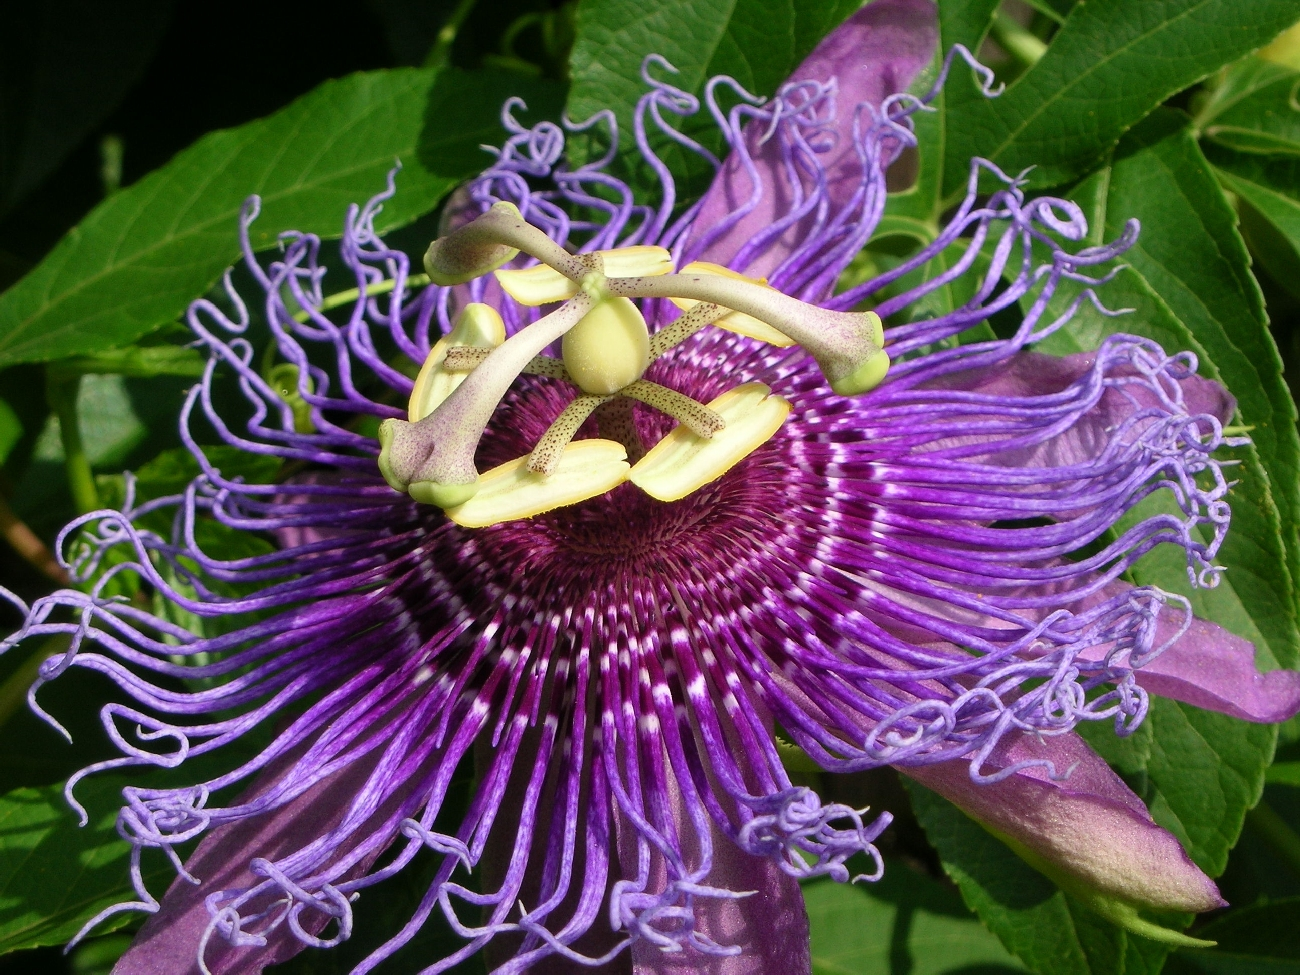 Passionflower is one of the most potent flowers for increasing a sense of calm. Read more at Notjustpaleo.com